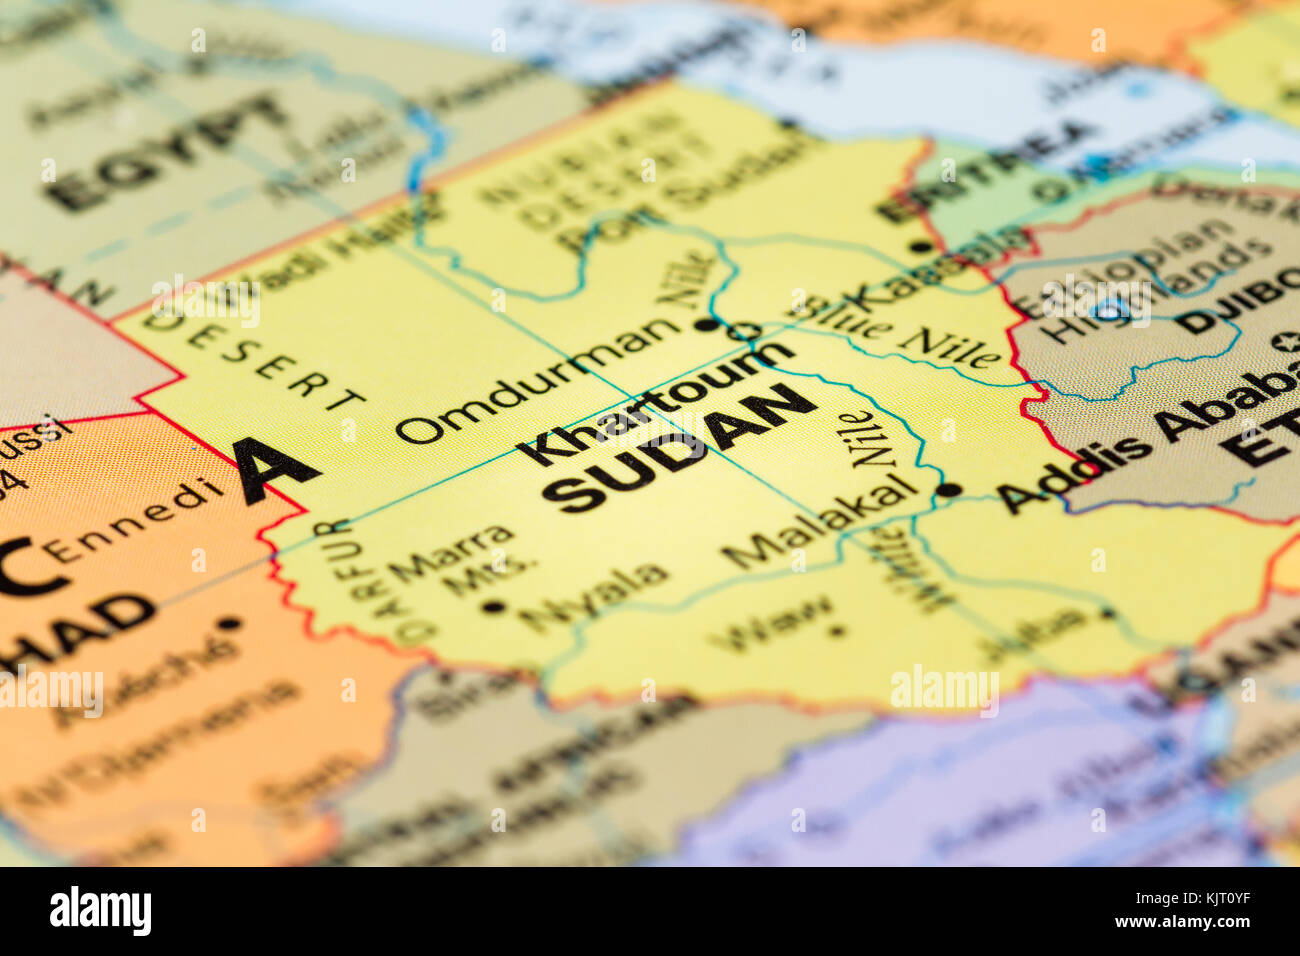 Close Up Of A World Map With The Country Of Sudan In Focus Stock